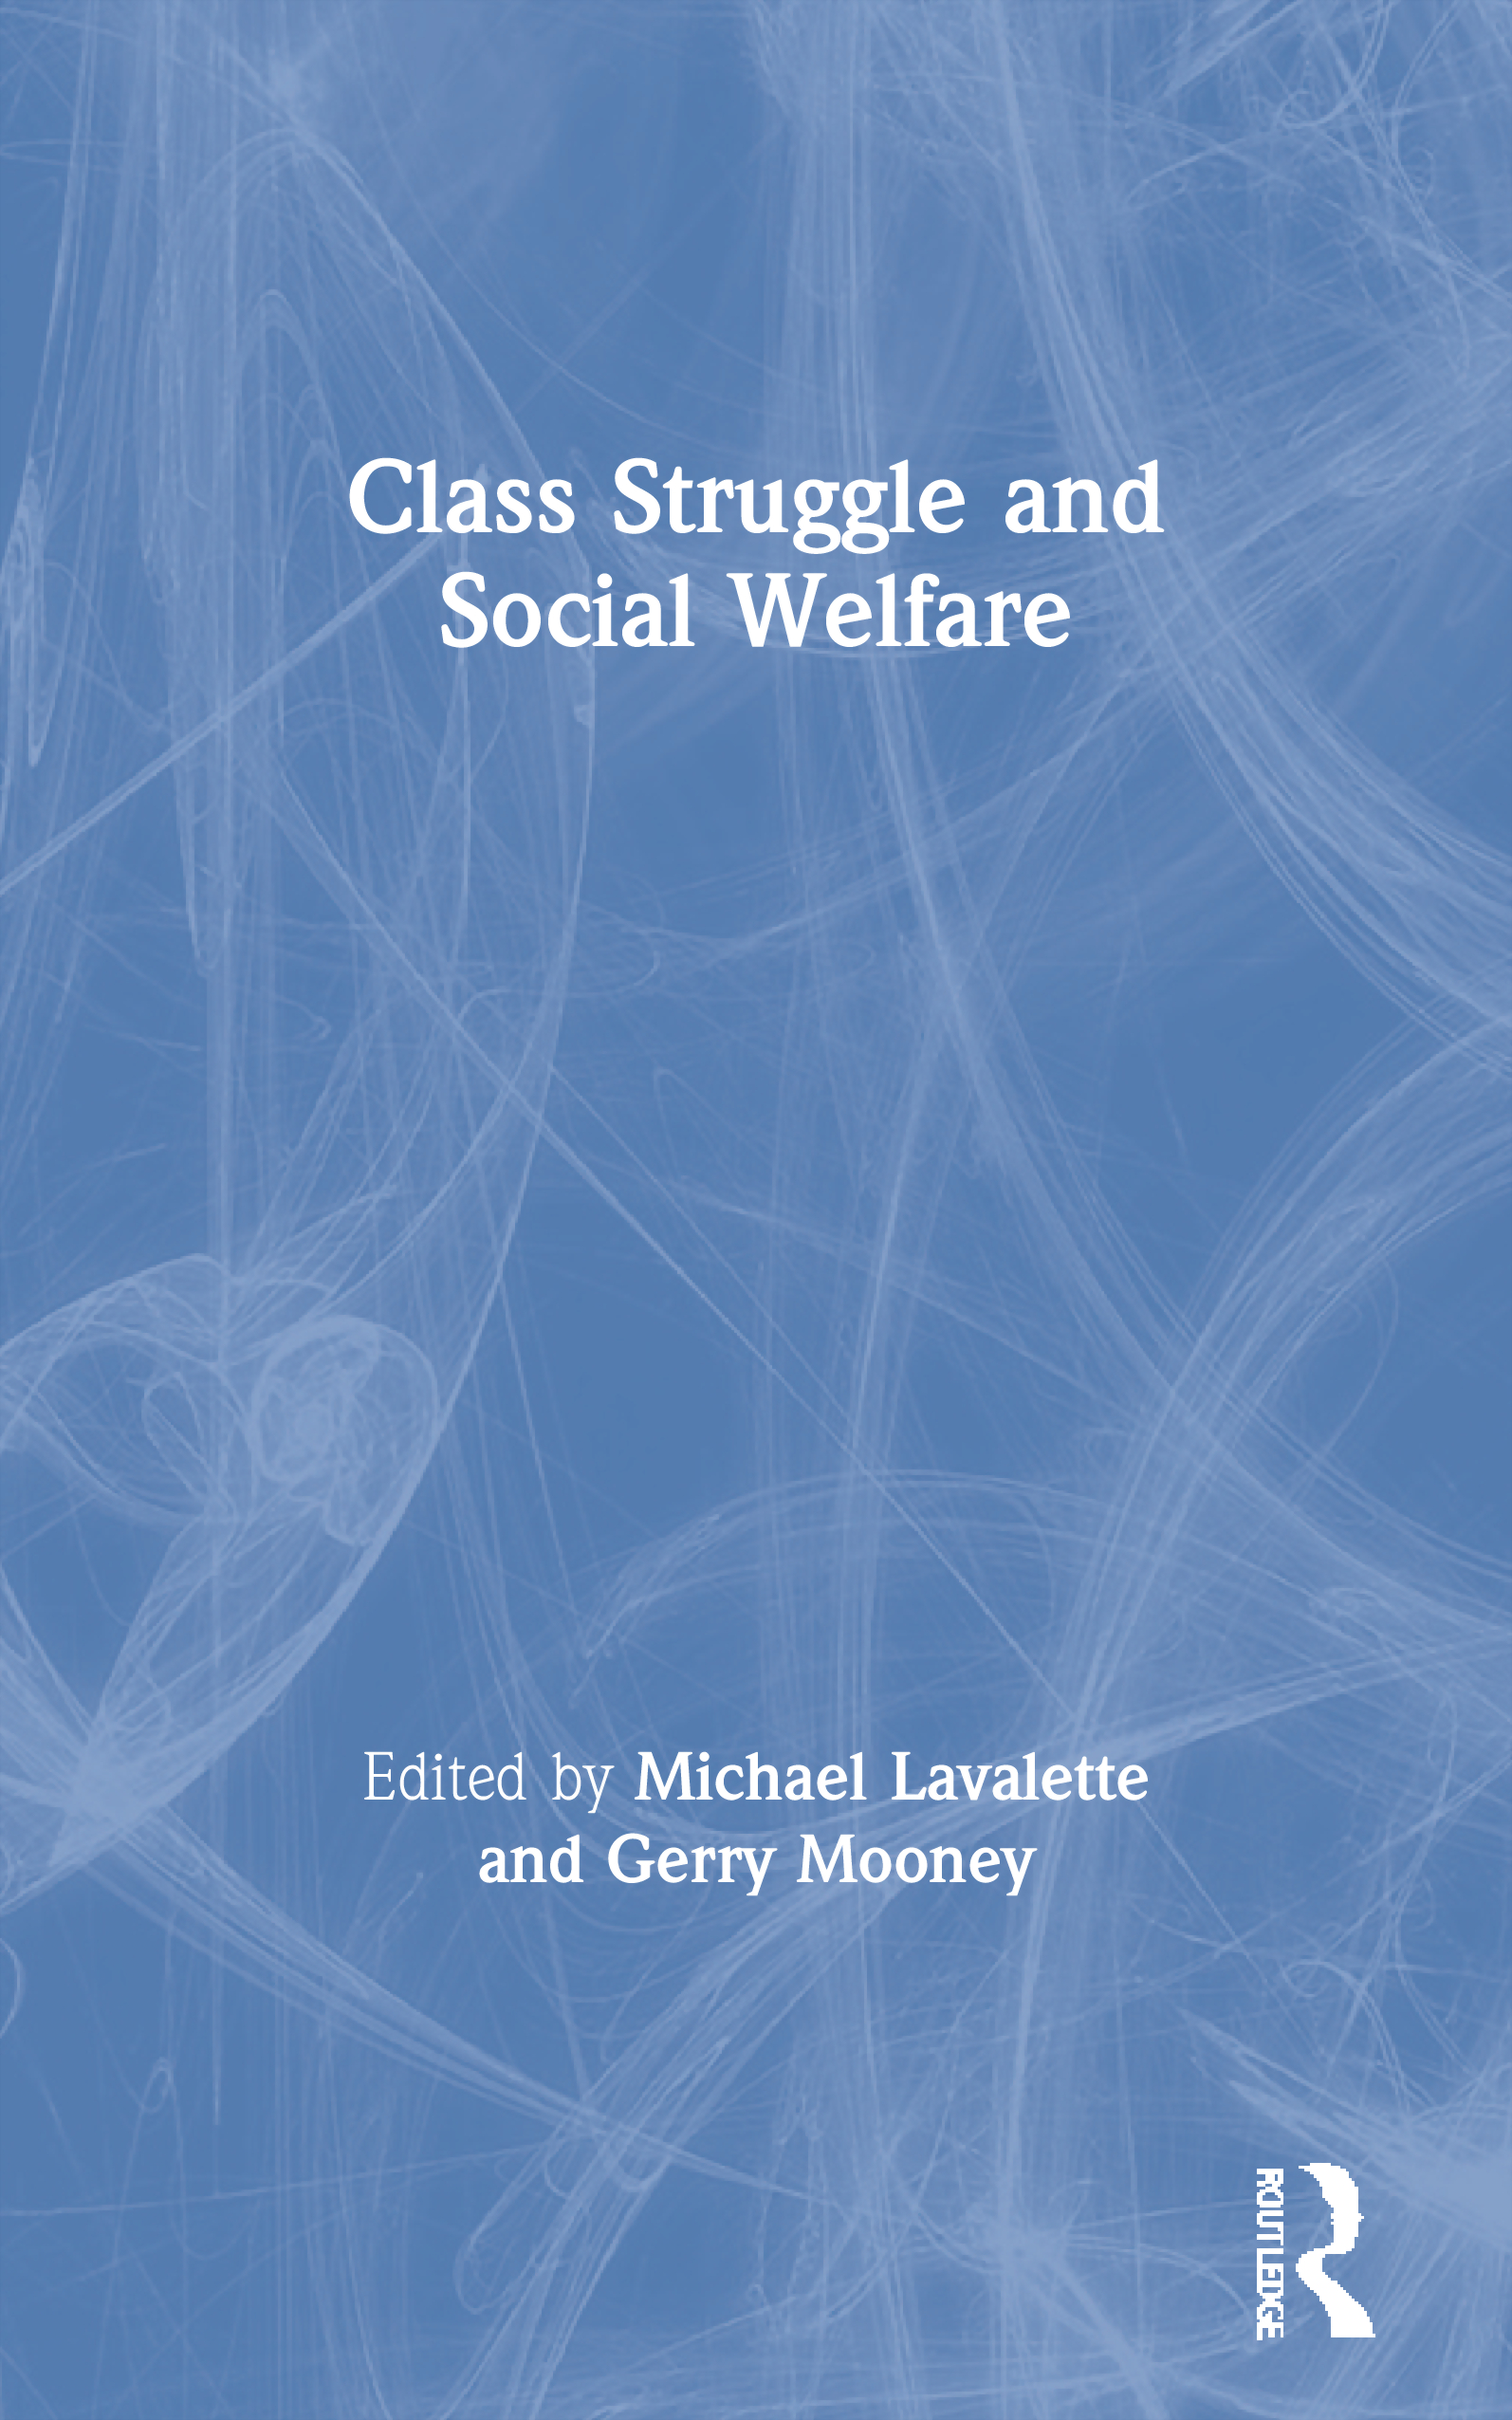 Housing and class struggles in post-war Glasgow: Charlie Johnstone